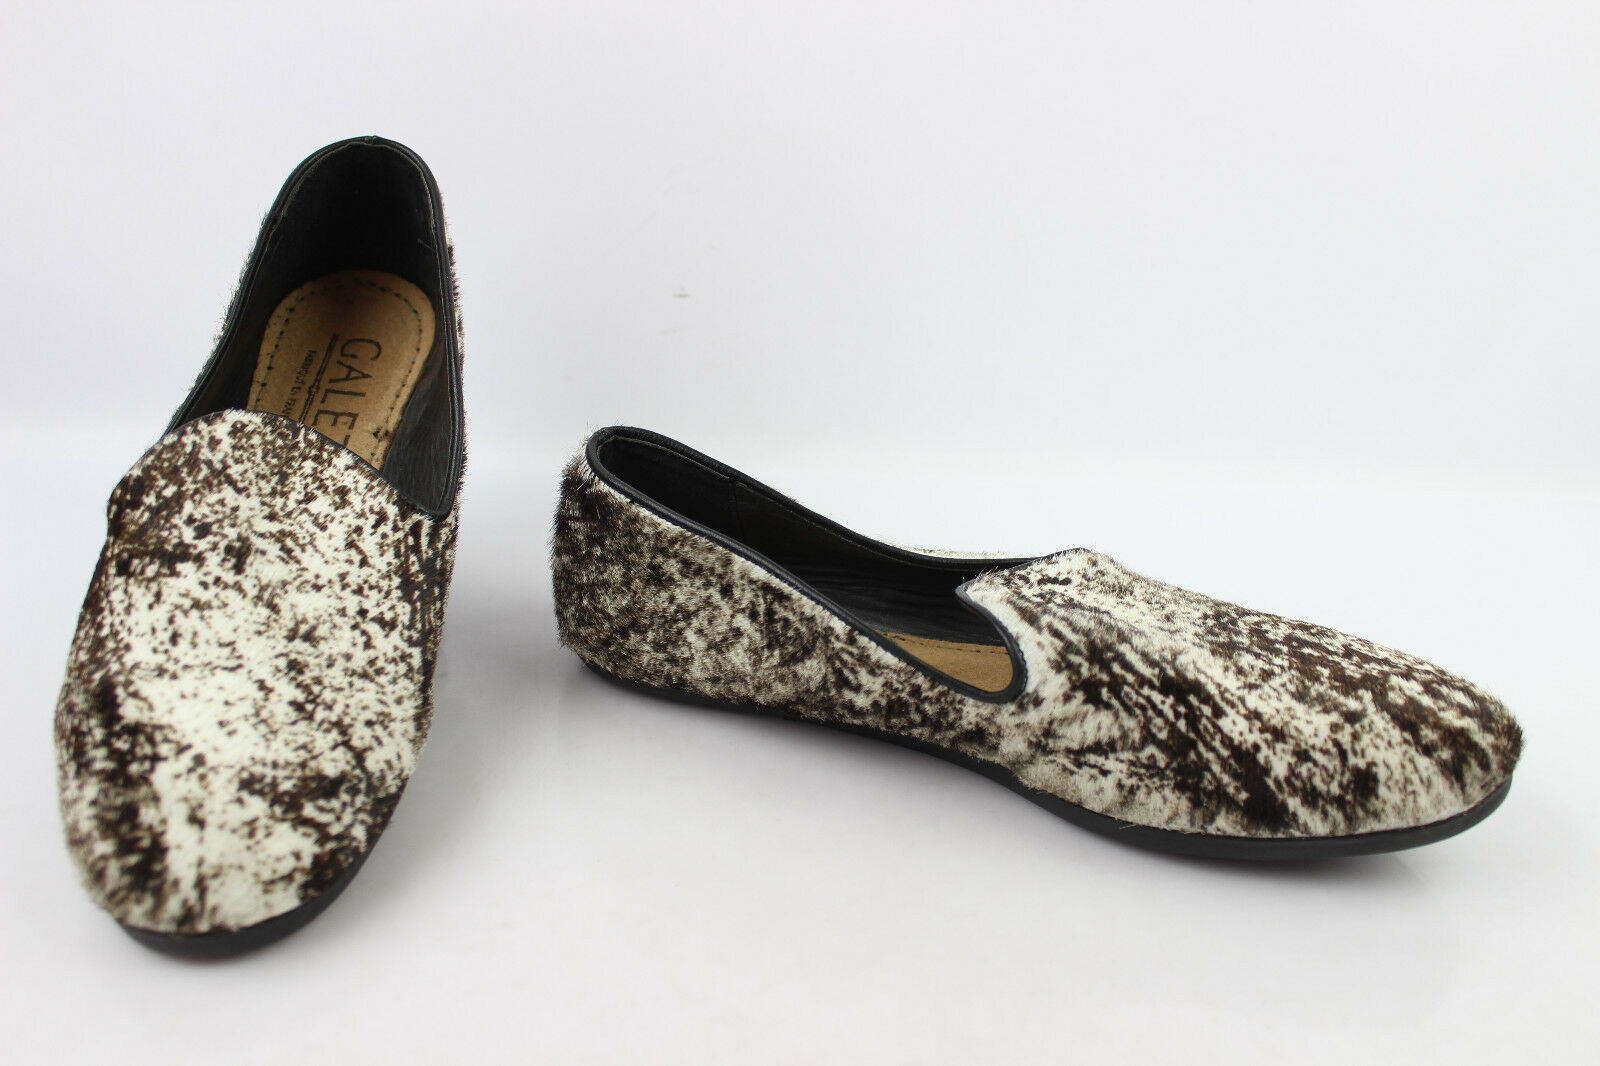 Mocassin Slippers Fur GALET Made in France T 39 VERY GOOD CONDITION